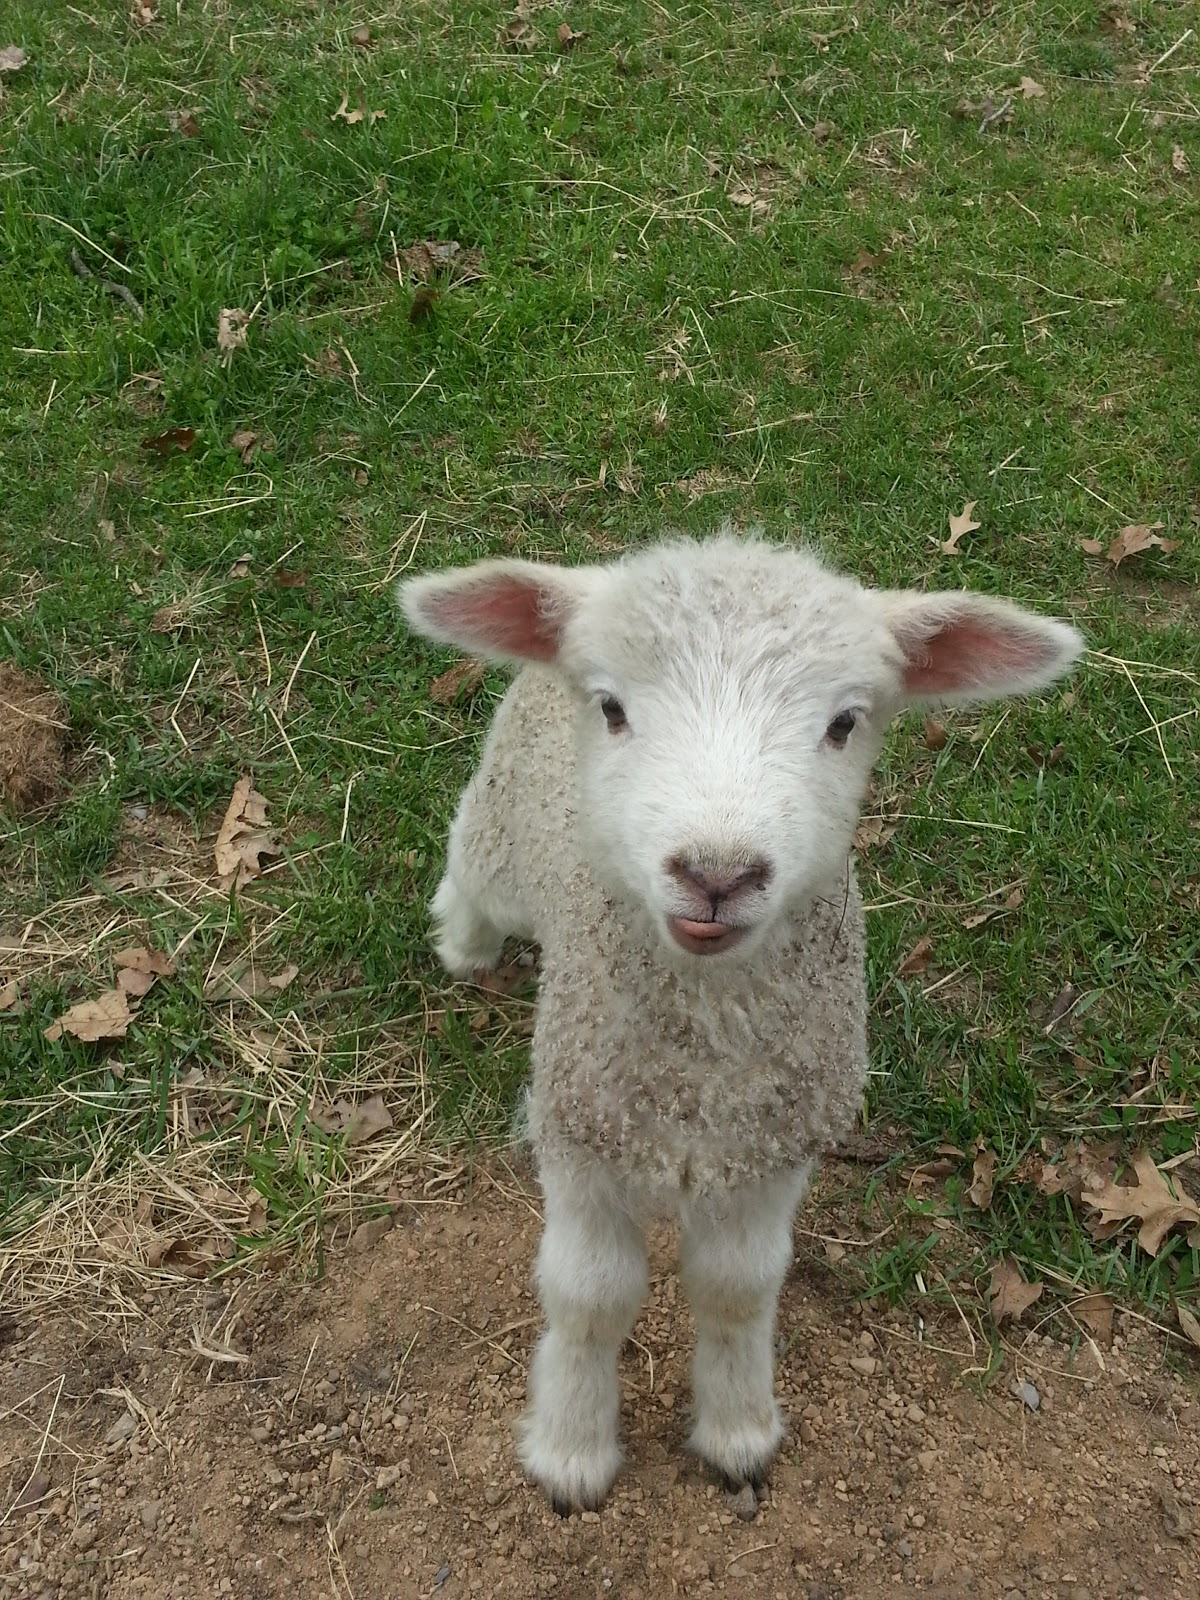 Frontier Culture Museum of Virginia: More baby lambs!